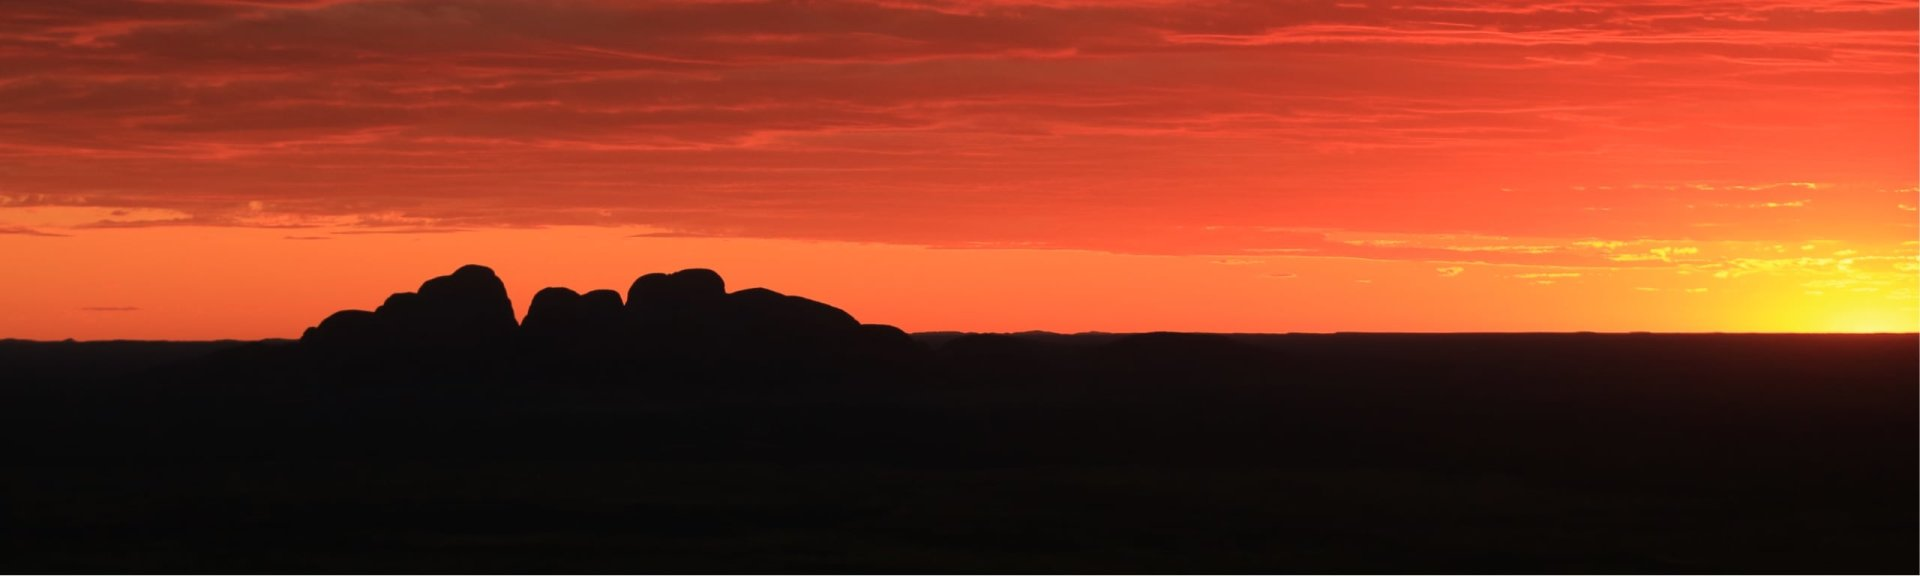 Kata Tjuta at sunset. Photo: Corinne Le Gall